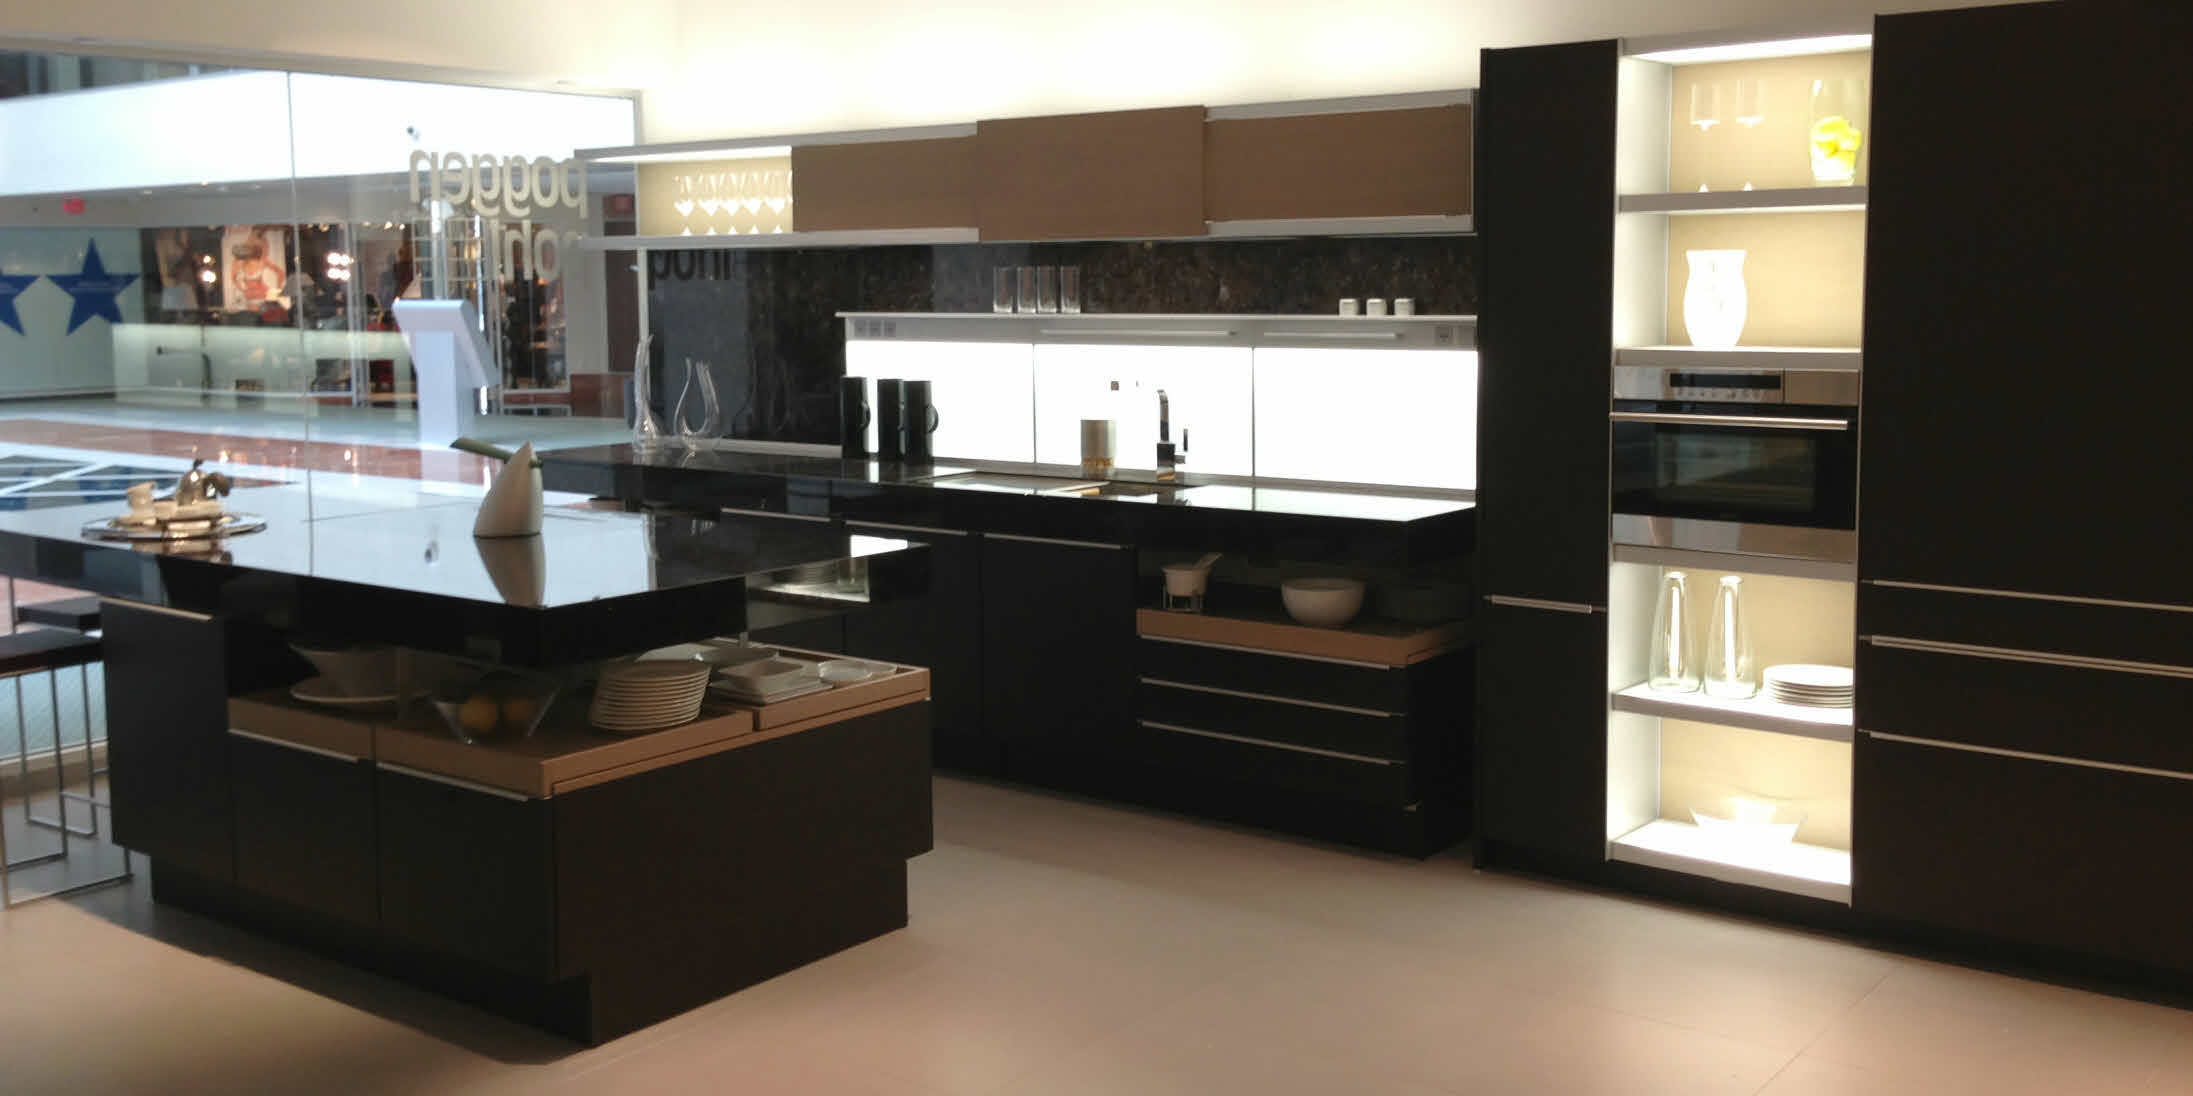 ordinary Poggenpohl Kitchens Prices #2: Poggenpohl Kitchen photo - 1